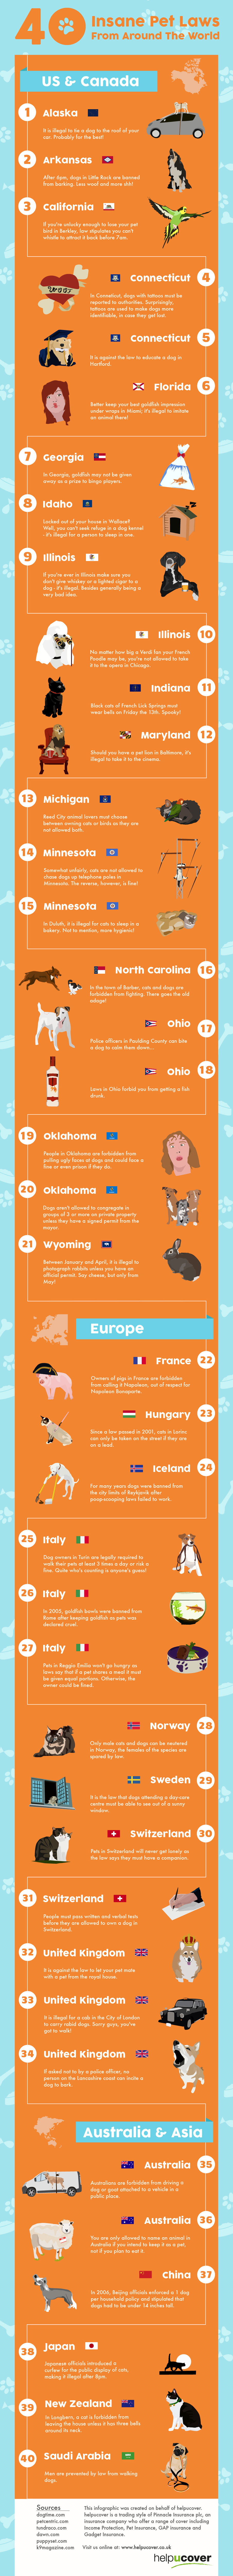 40 Insane Pet Laws from Around the World